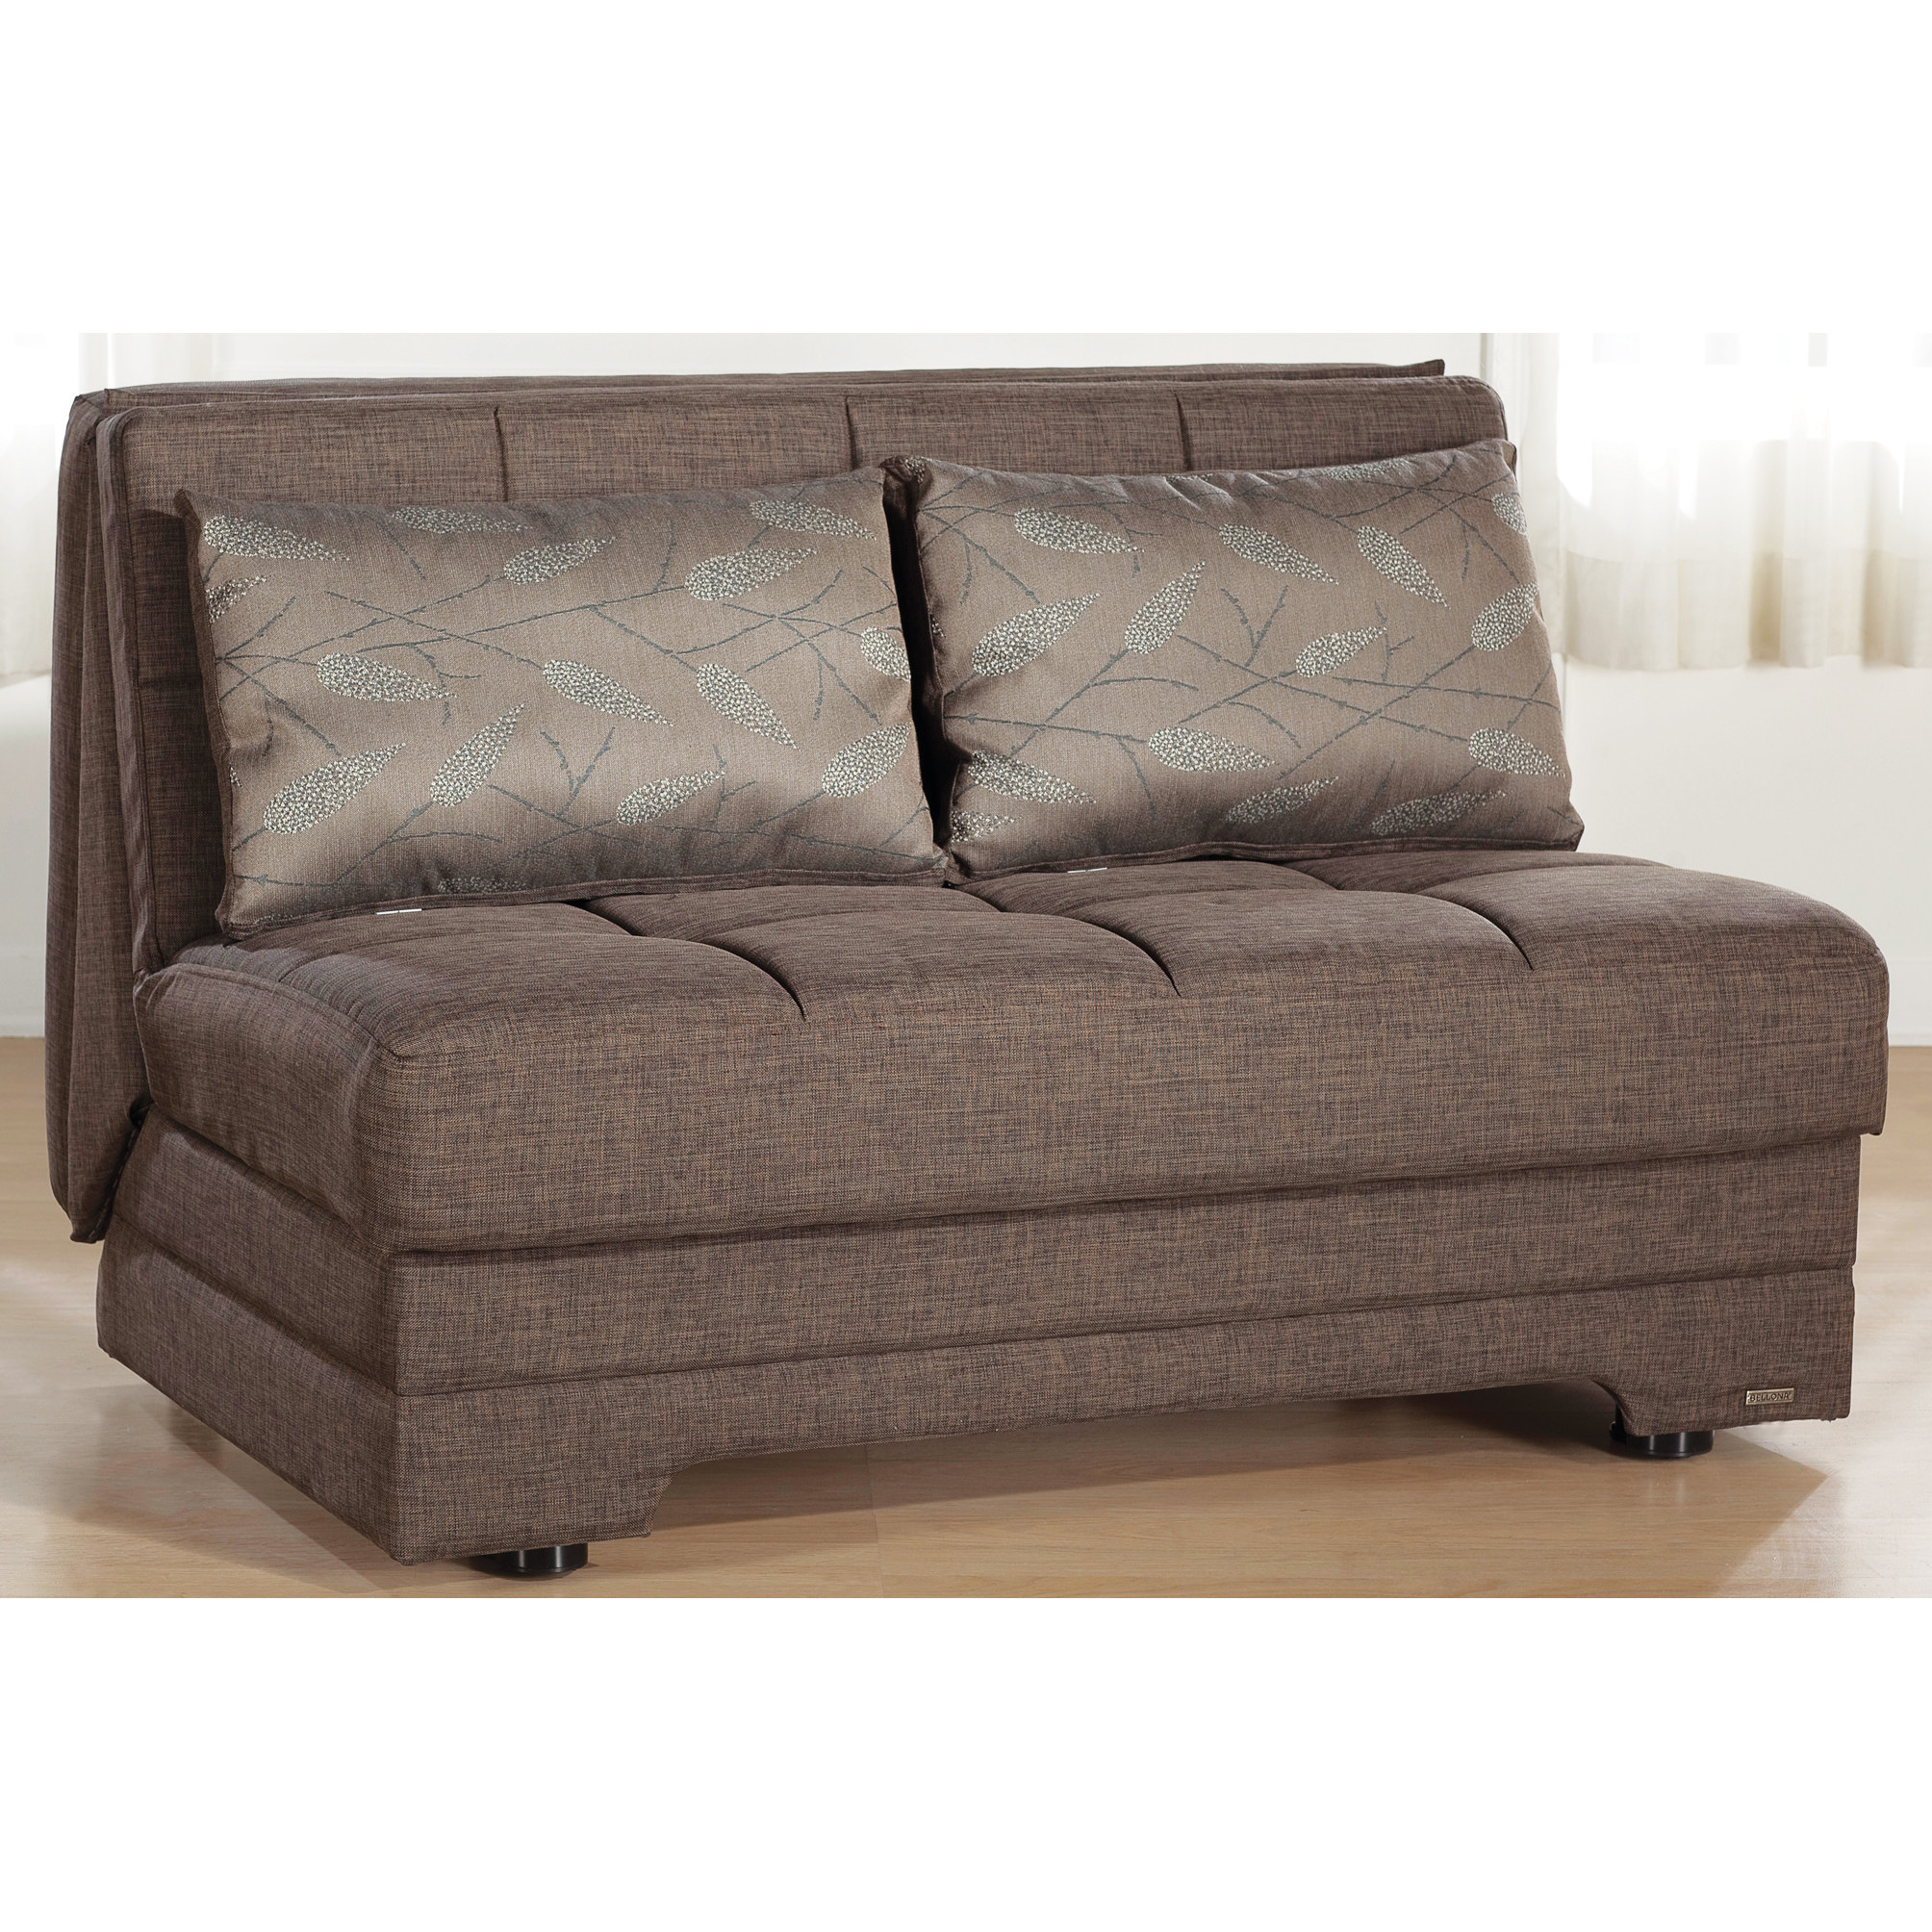 Queen Sleeper Sofa | Sleeper Loveseat Walmart | Loveseat Sleeper